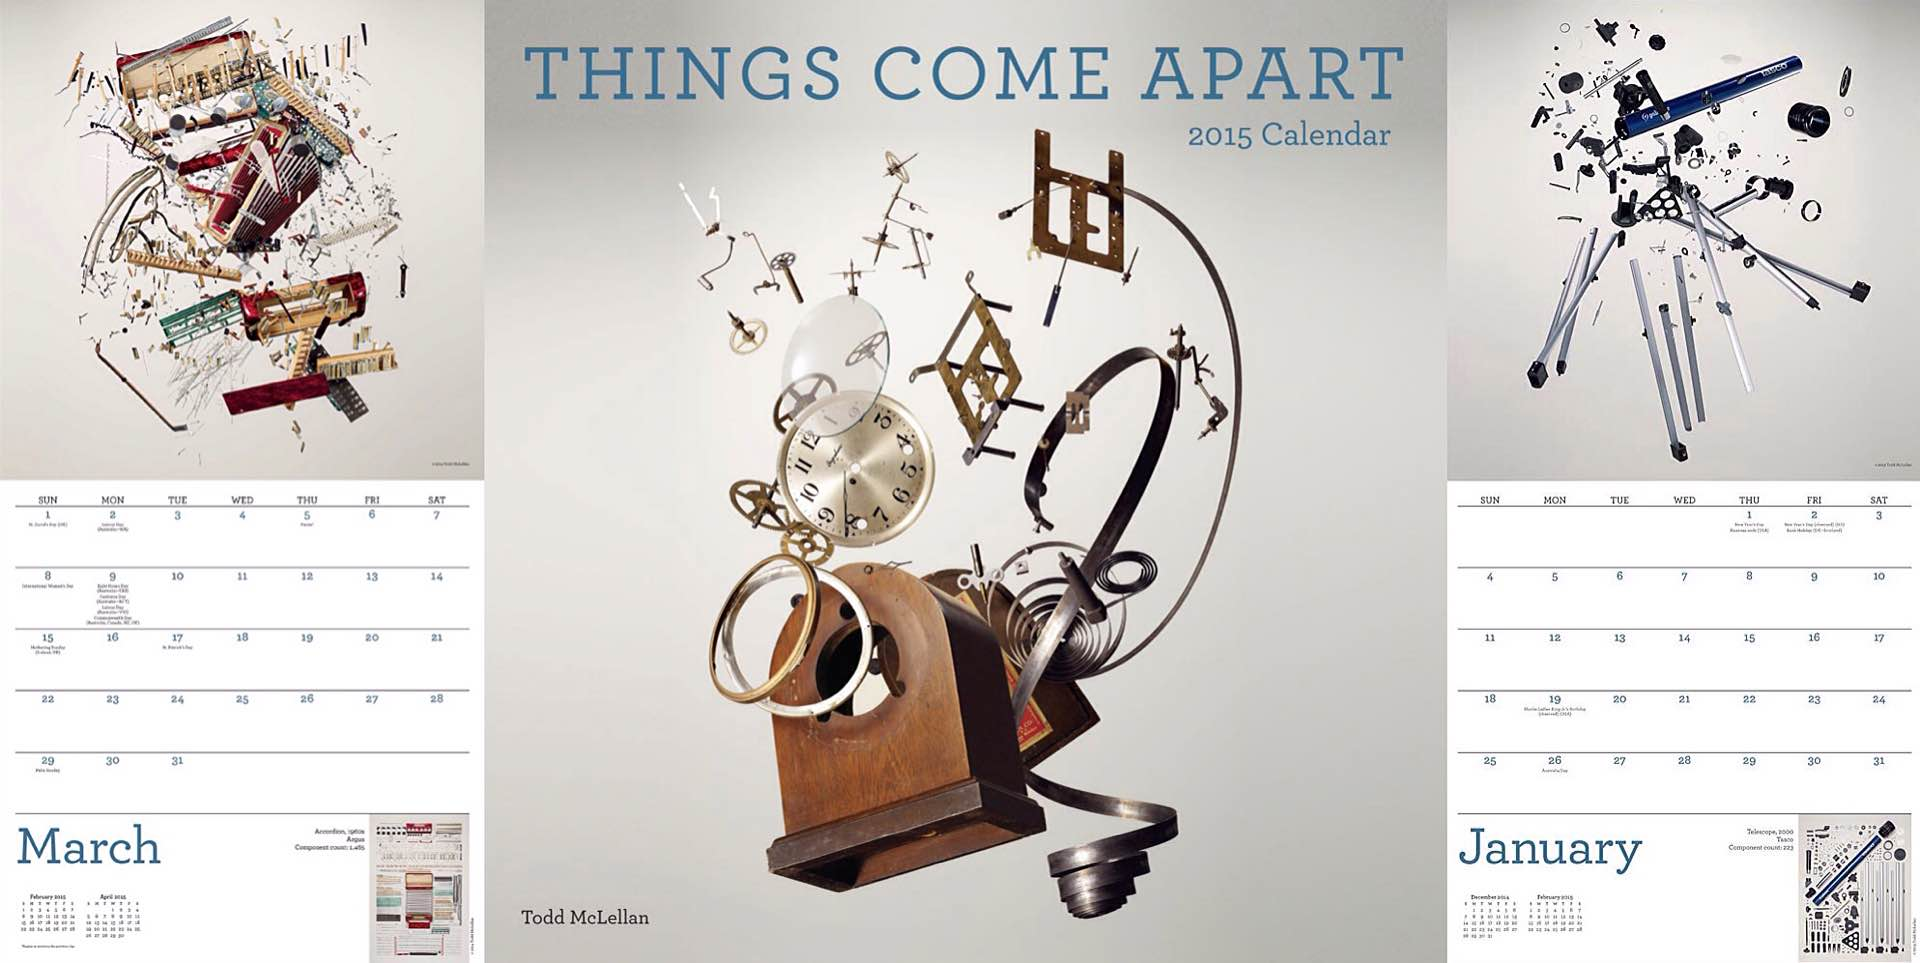 'Things Come Apart' 2015 Wall Calendar